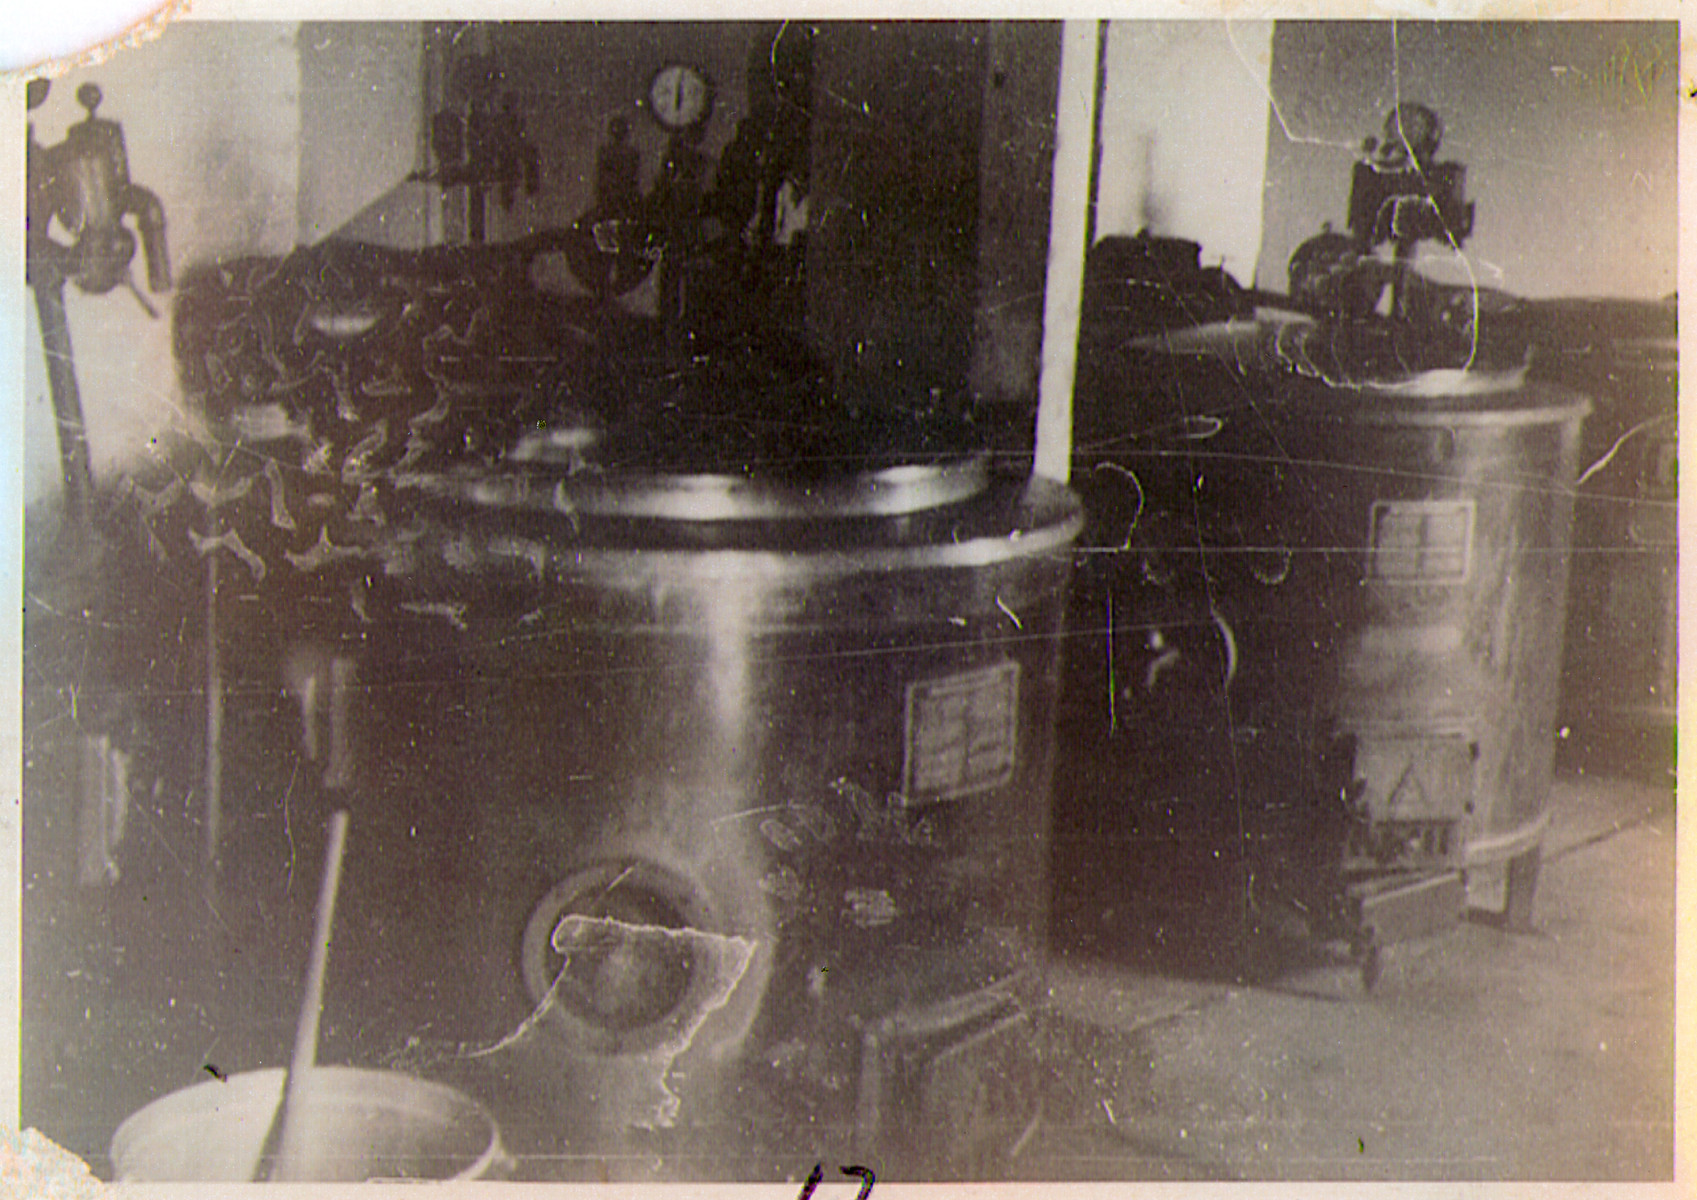 View of two large vats in the interior of an unknown building in th Hanover-Ahlem concentration camp.